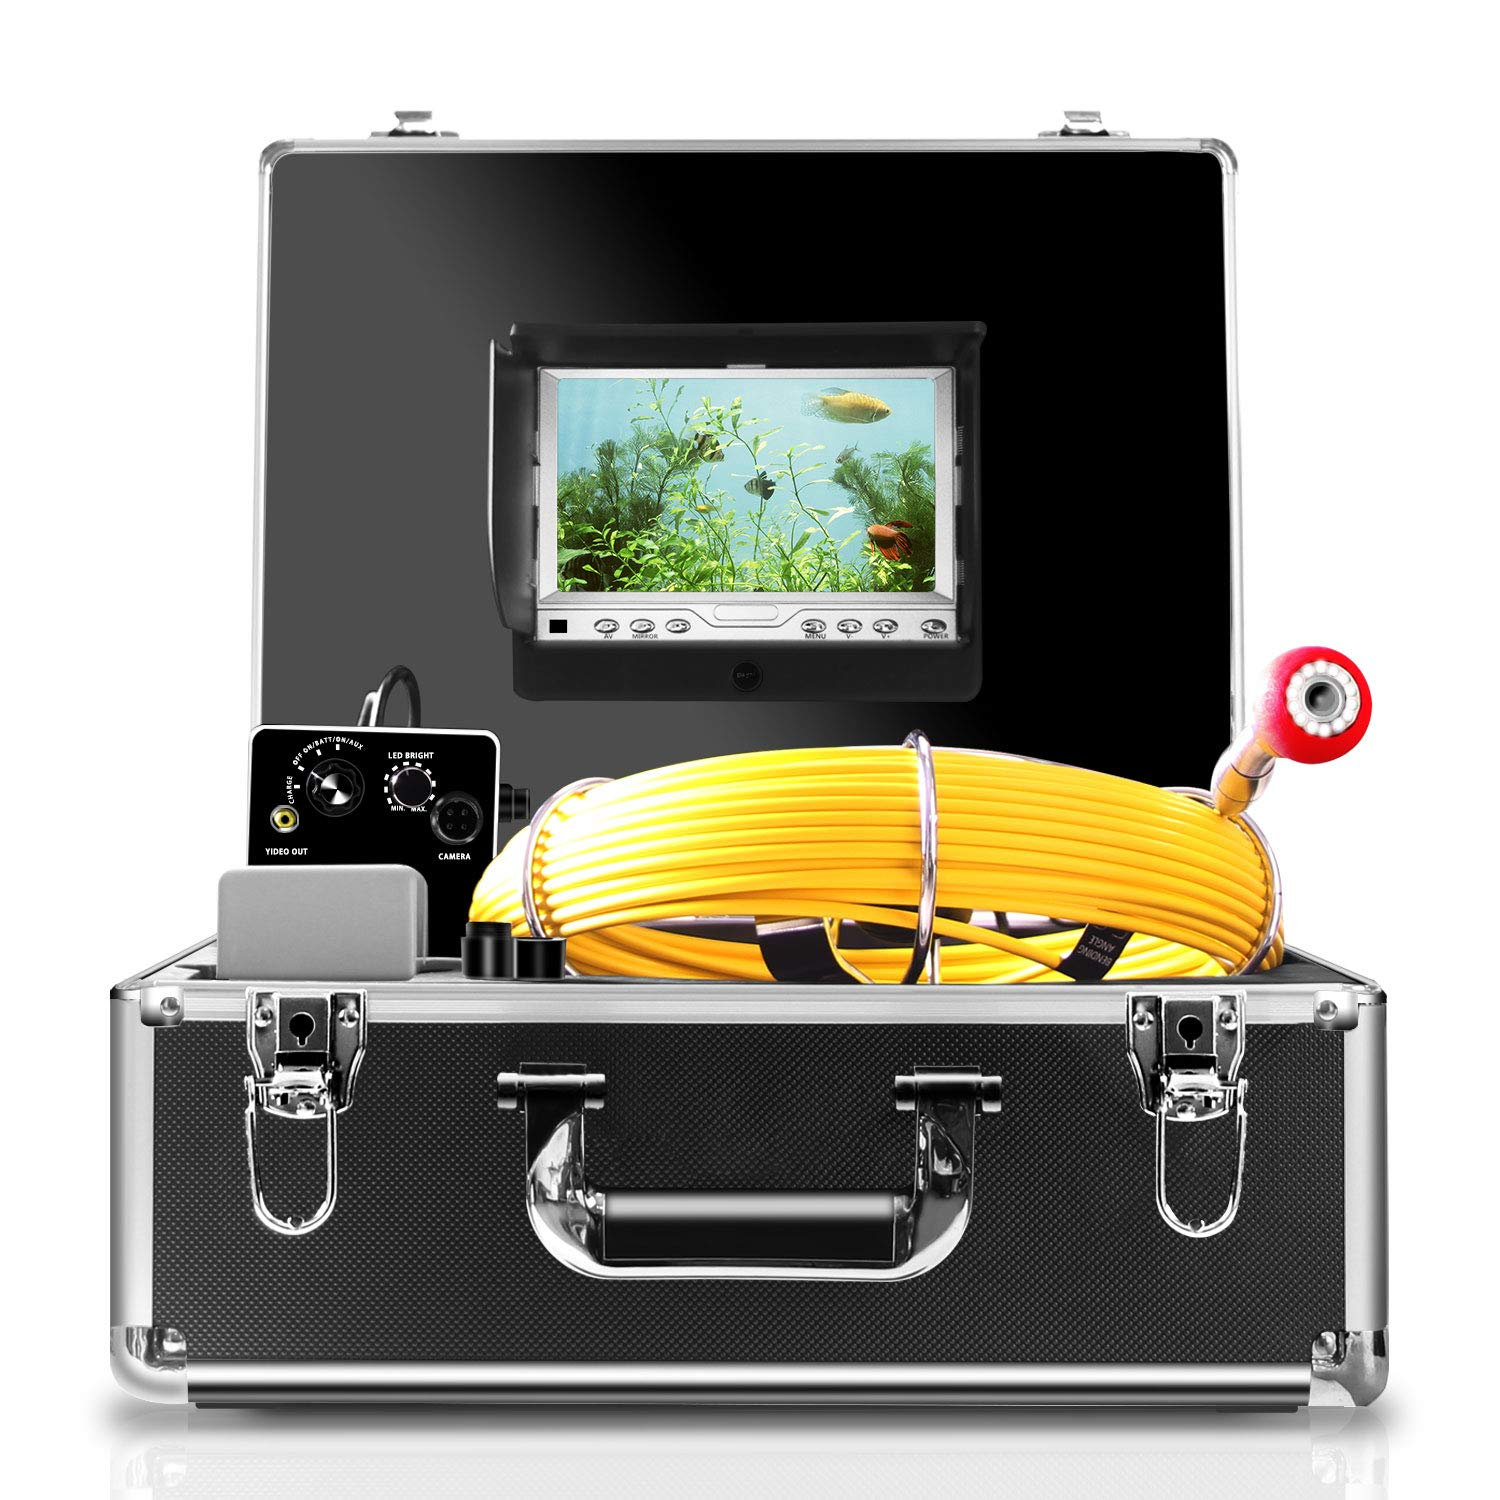 Pipe Inspection Camera,IHBUDS Pipeline Drain Sewer Industrial Endoscope, PC30M Waterproof IP68 30M/100ft Snake Video System with 7 Inch LCD Monitor 1000TVL Sony CCD DVR Recorder (8GB SD Card Include) by IHBUDS